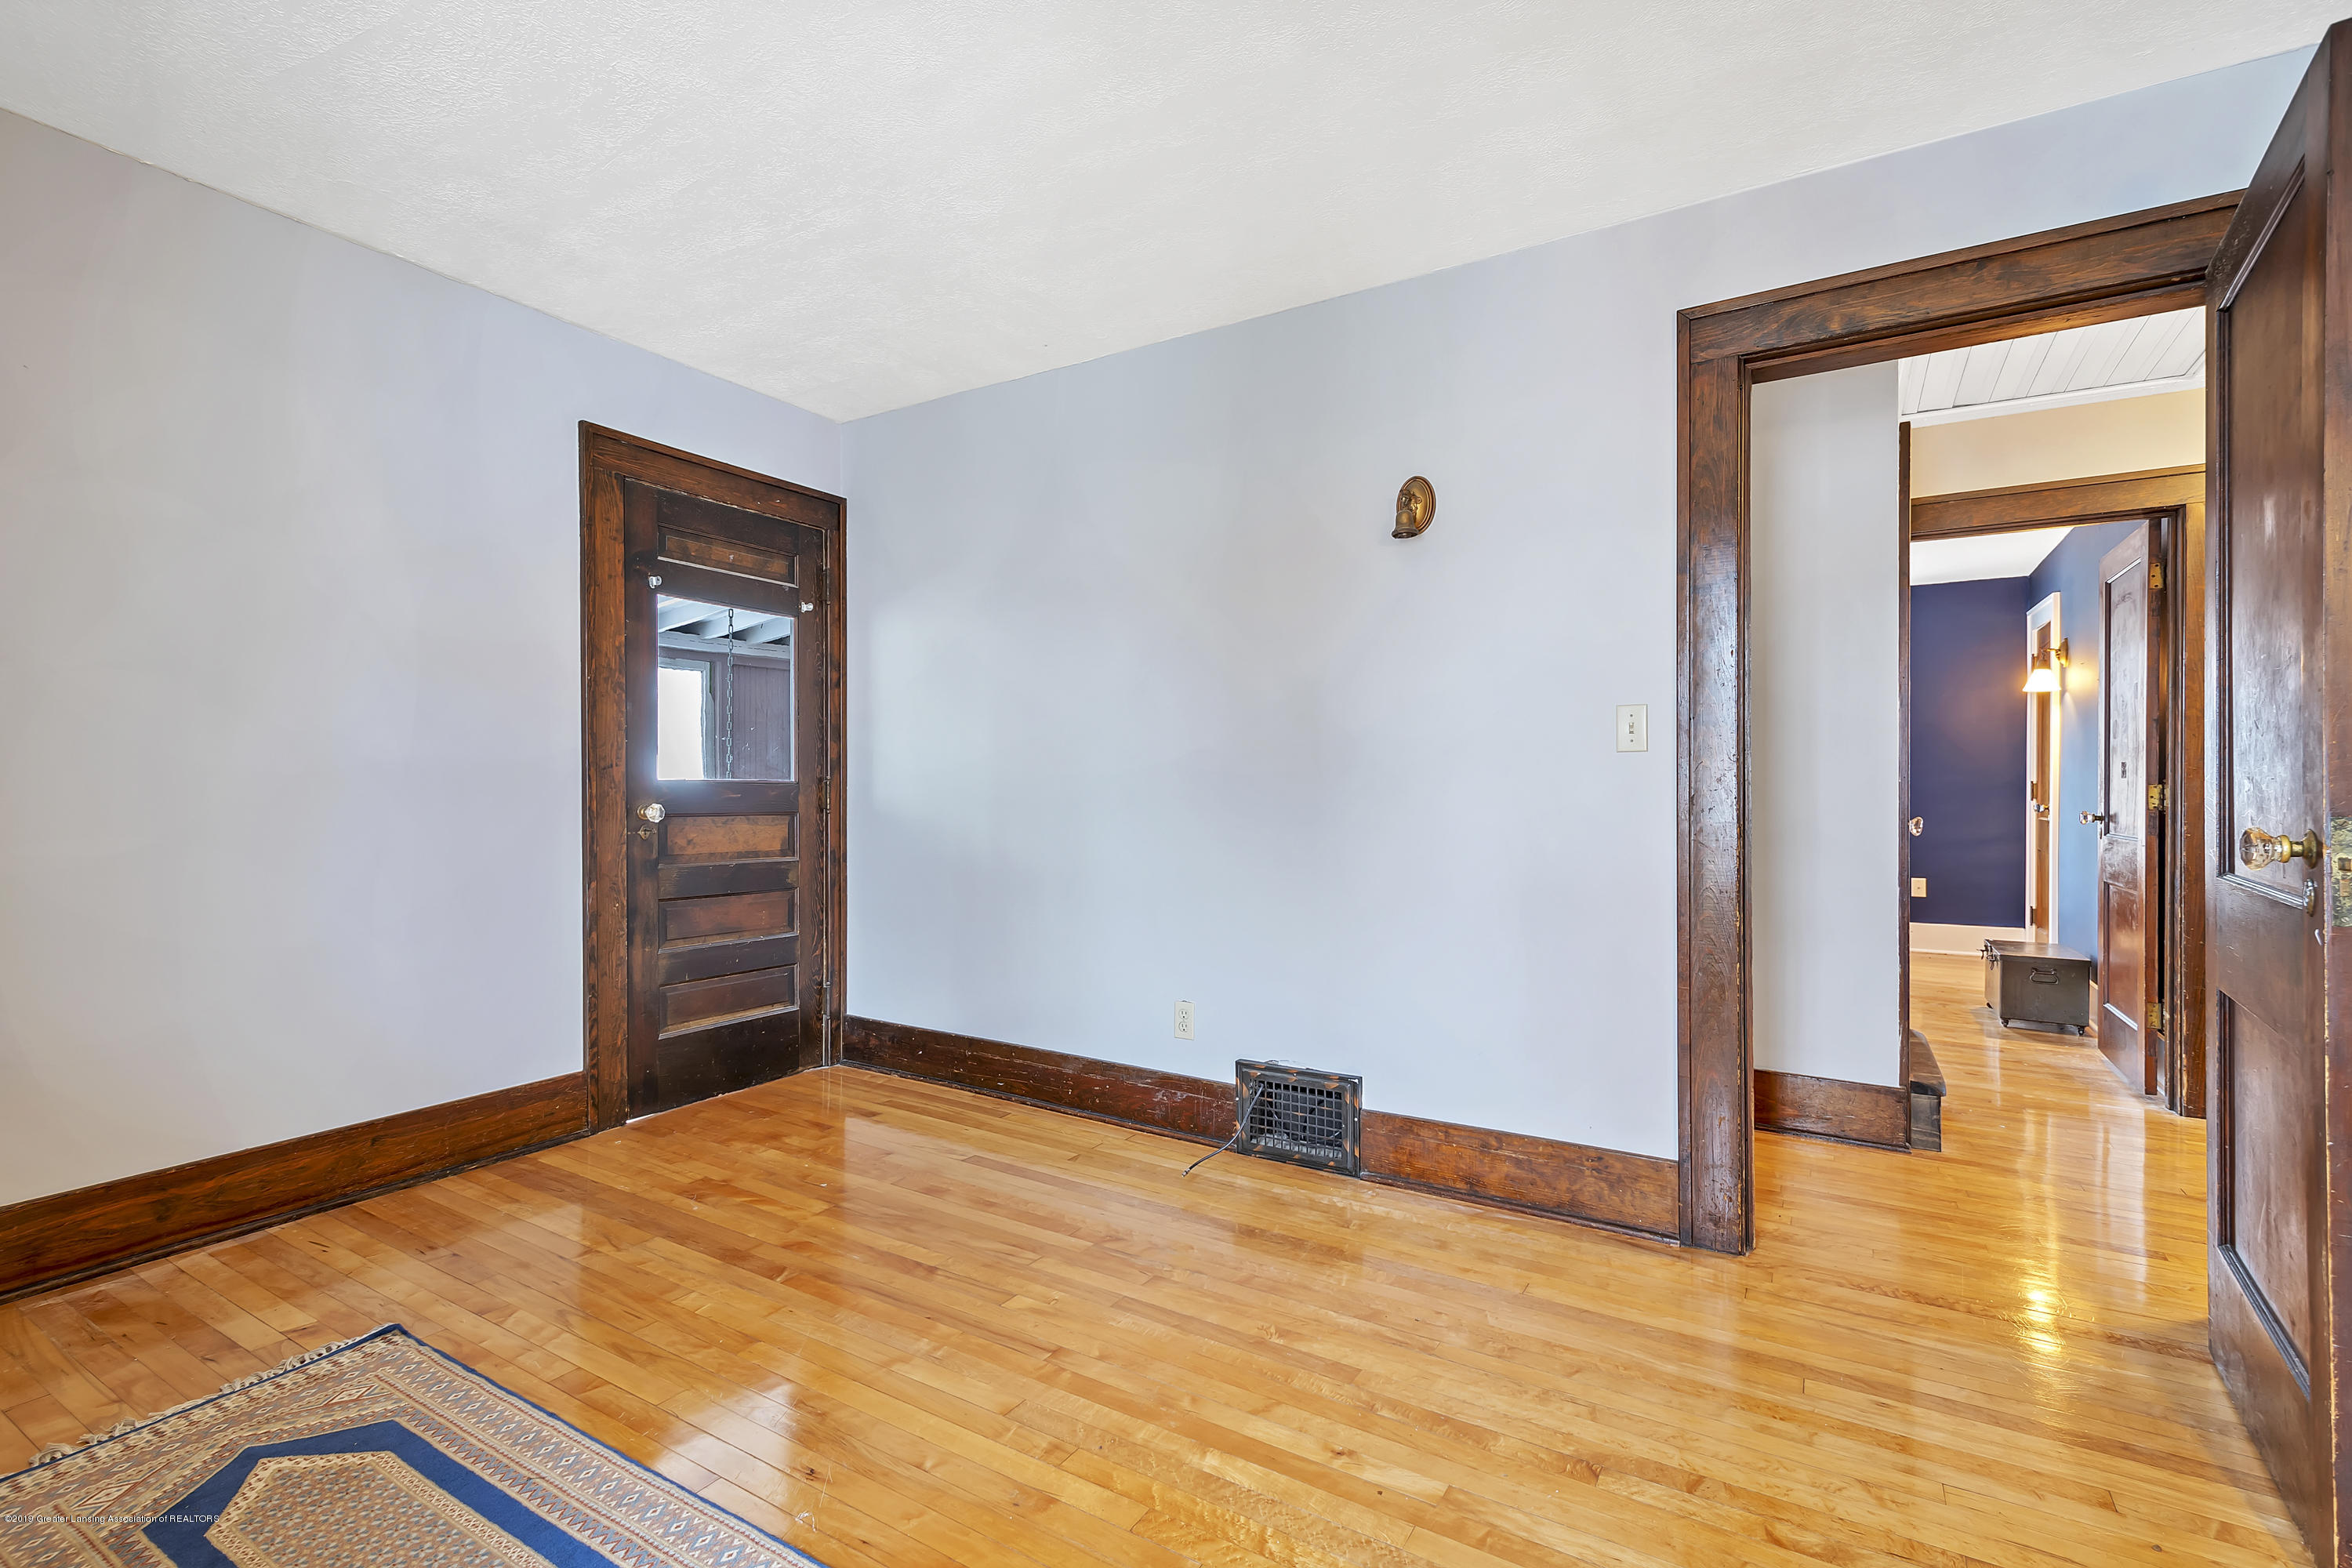 412 E Jefferson St - 412-E-Jefferson-WindowStill-Real-Estate- - 33